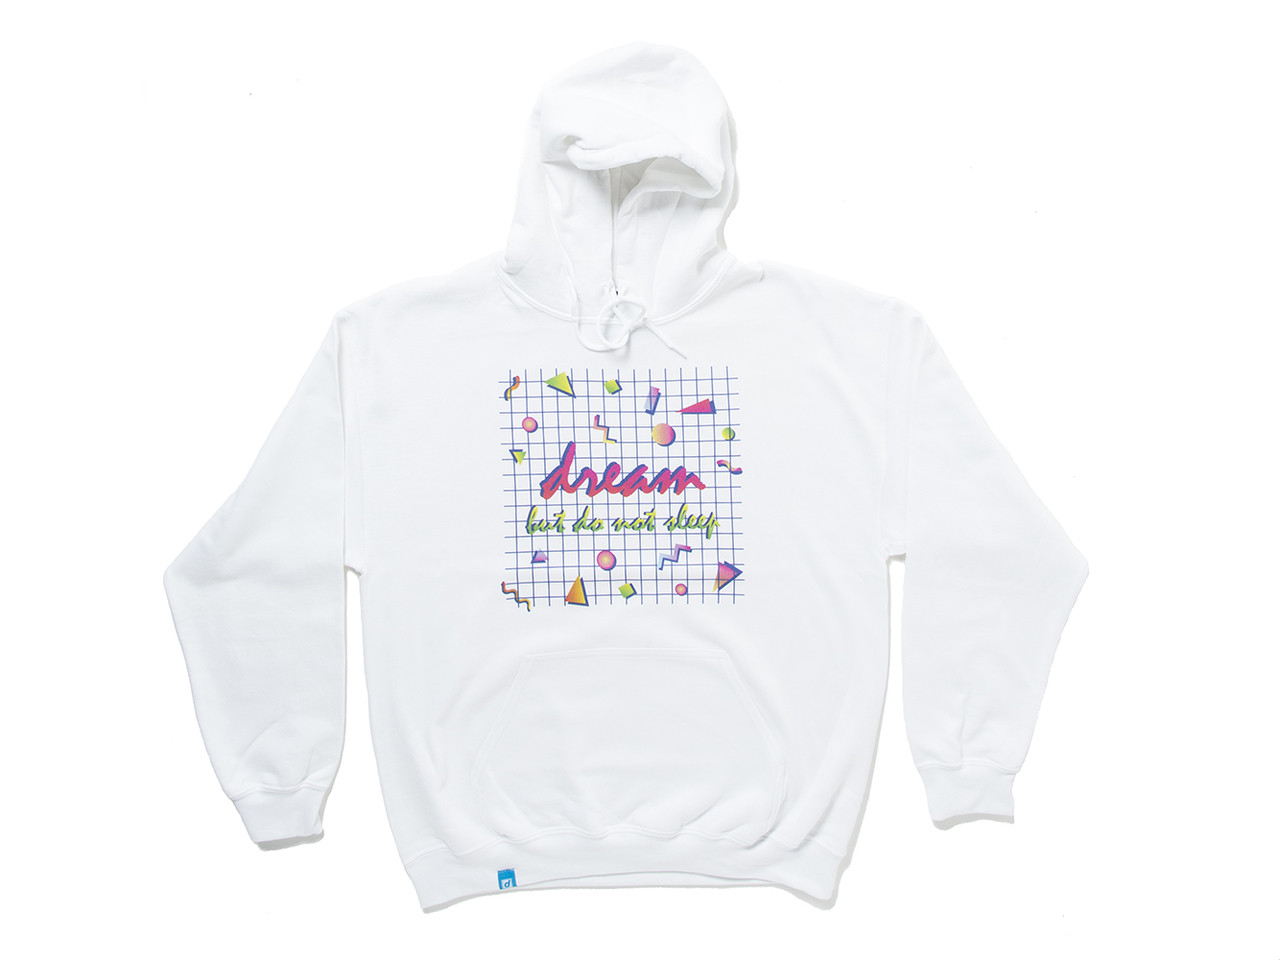 90s Grid Design Printed On A White Cotton Hoodie